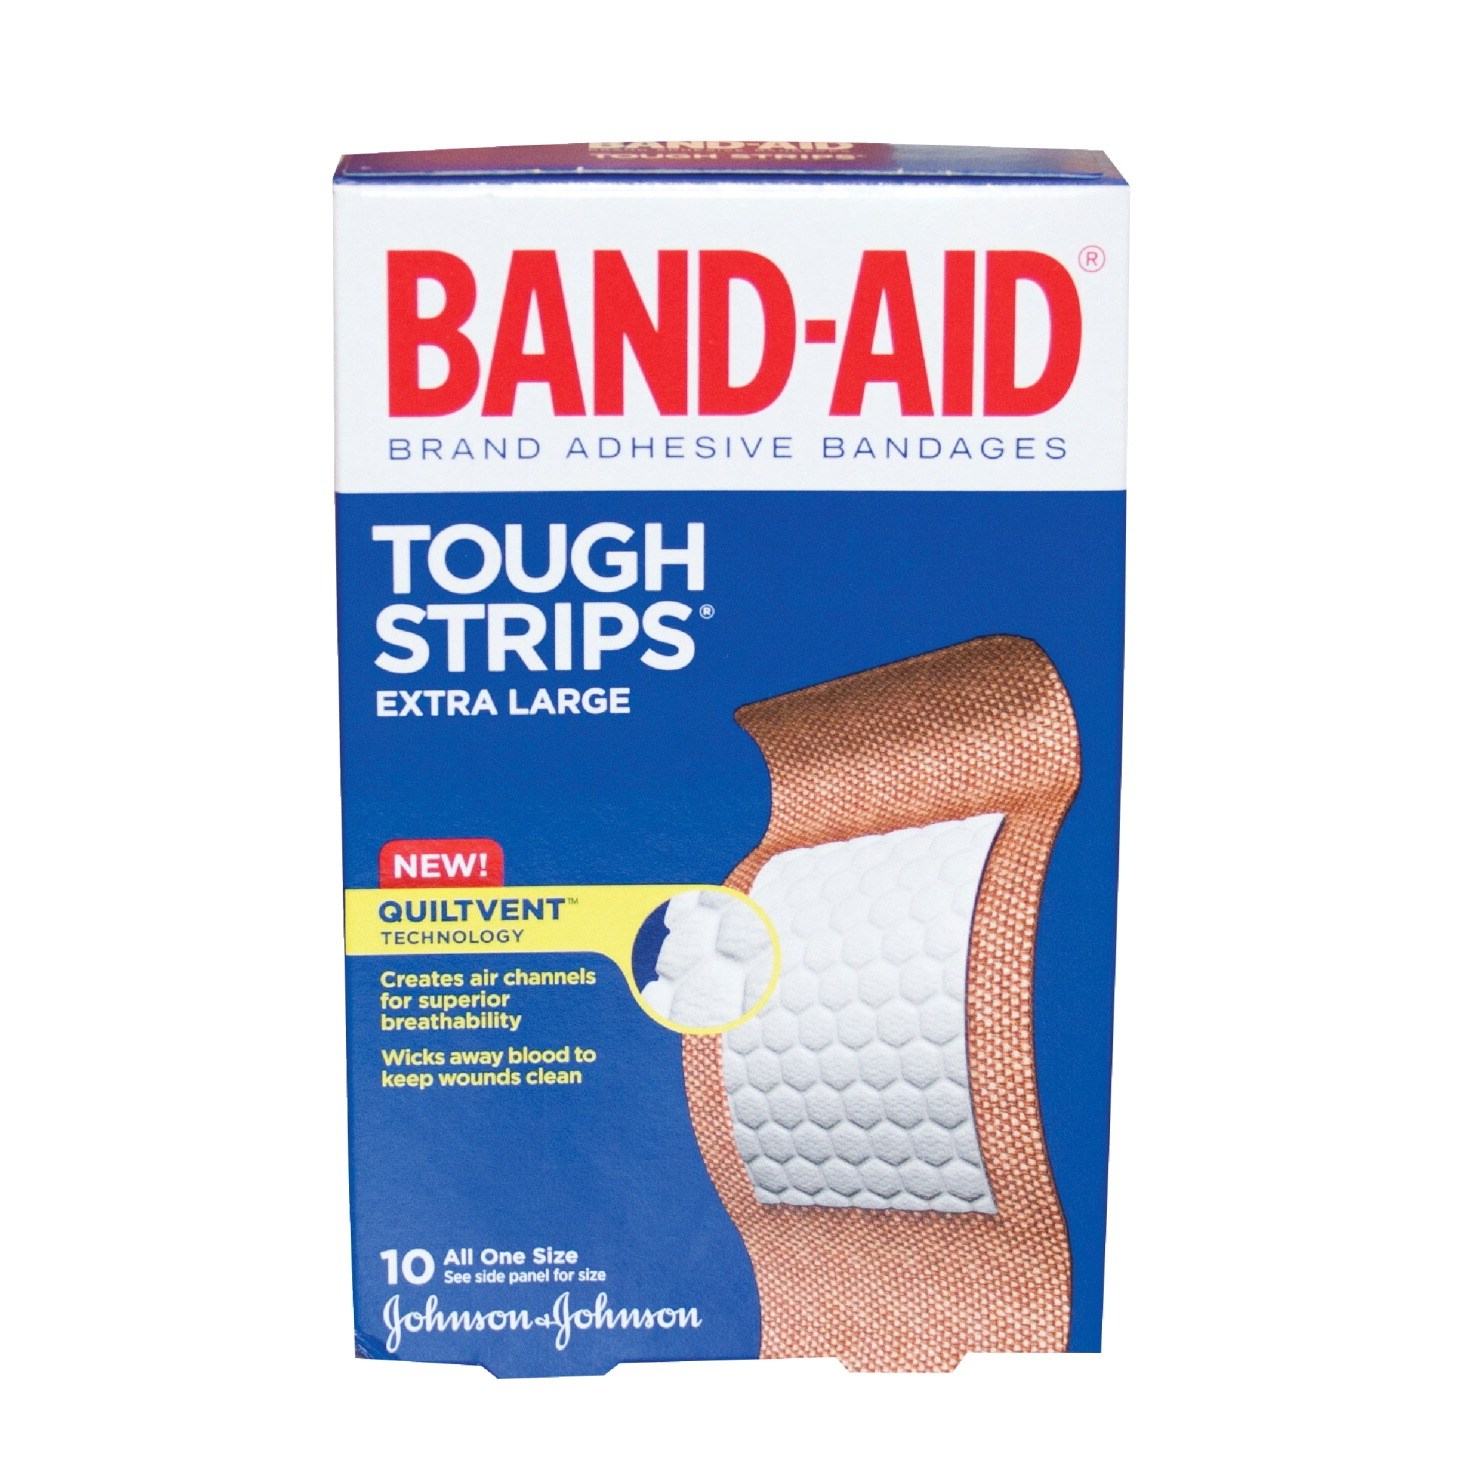 Bandaid Extra Large Bandage; Pack Of 10 - 1449408 - Facilities Management Facility Supplies First Aid Health Supplies Diagnostic Bandages And Masks 1449408